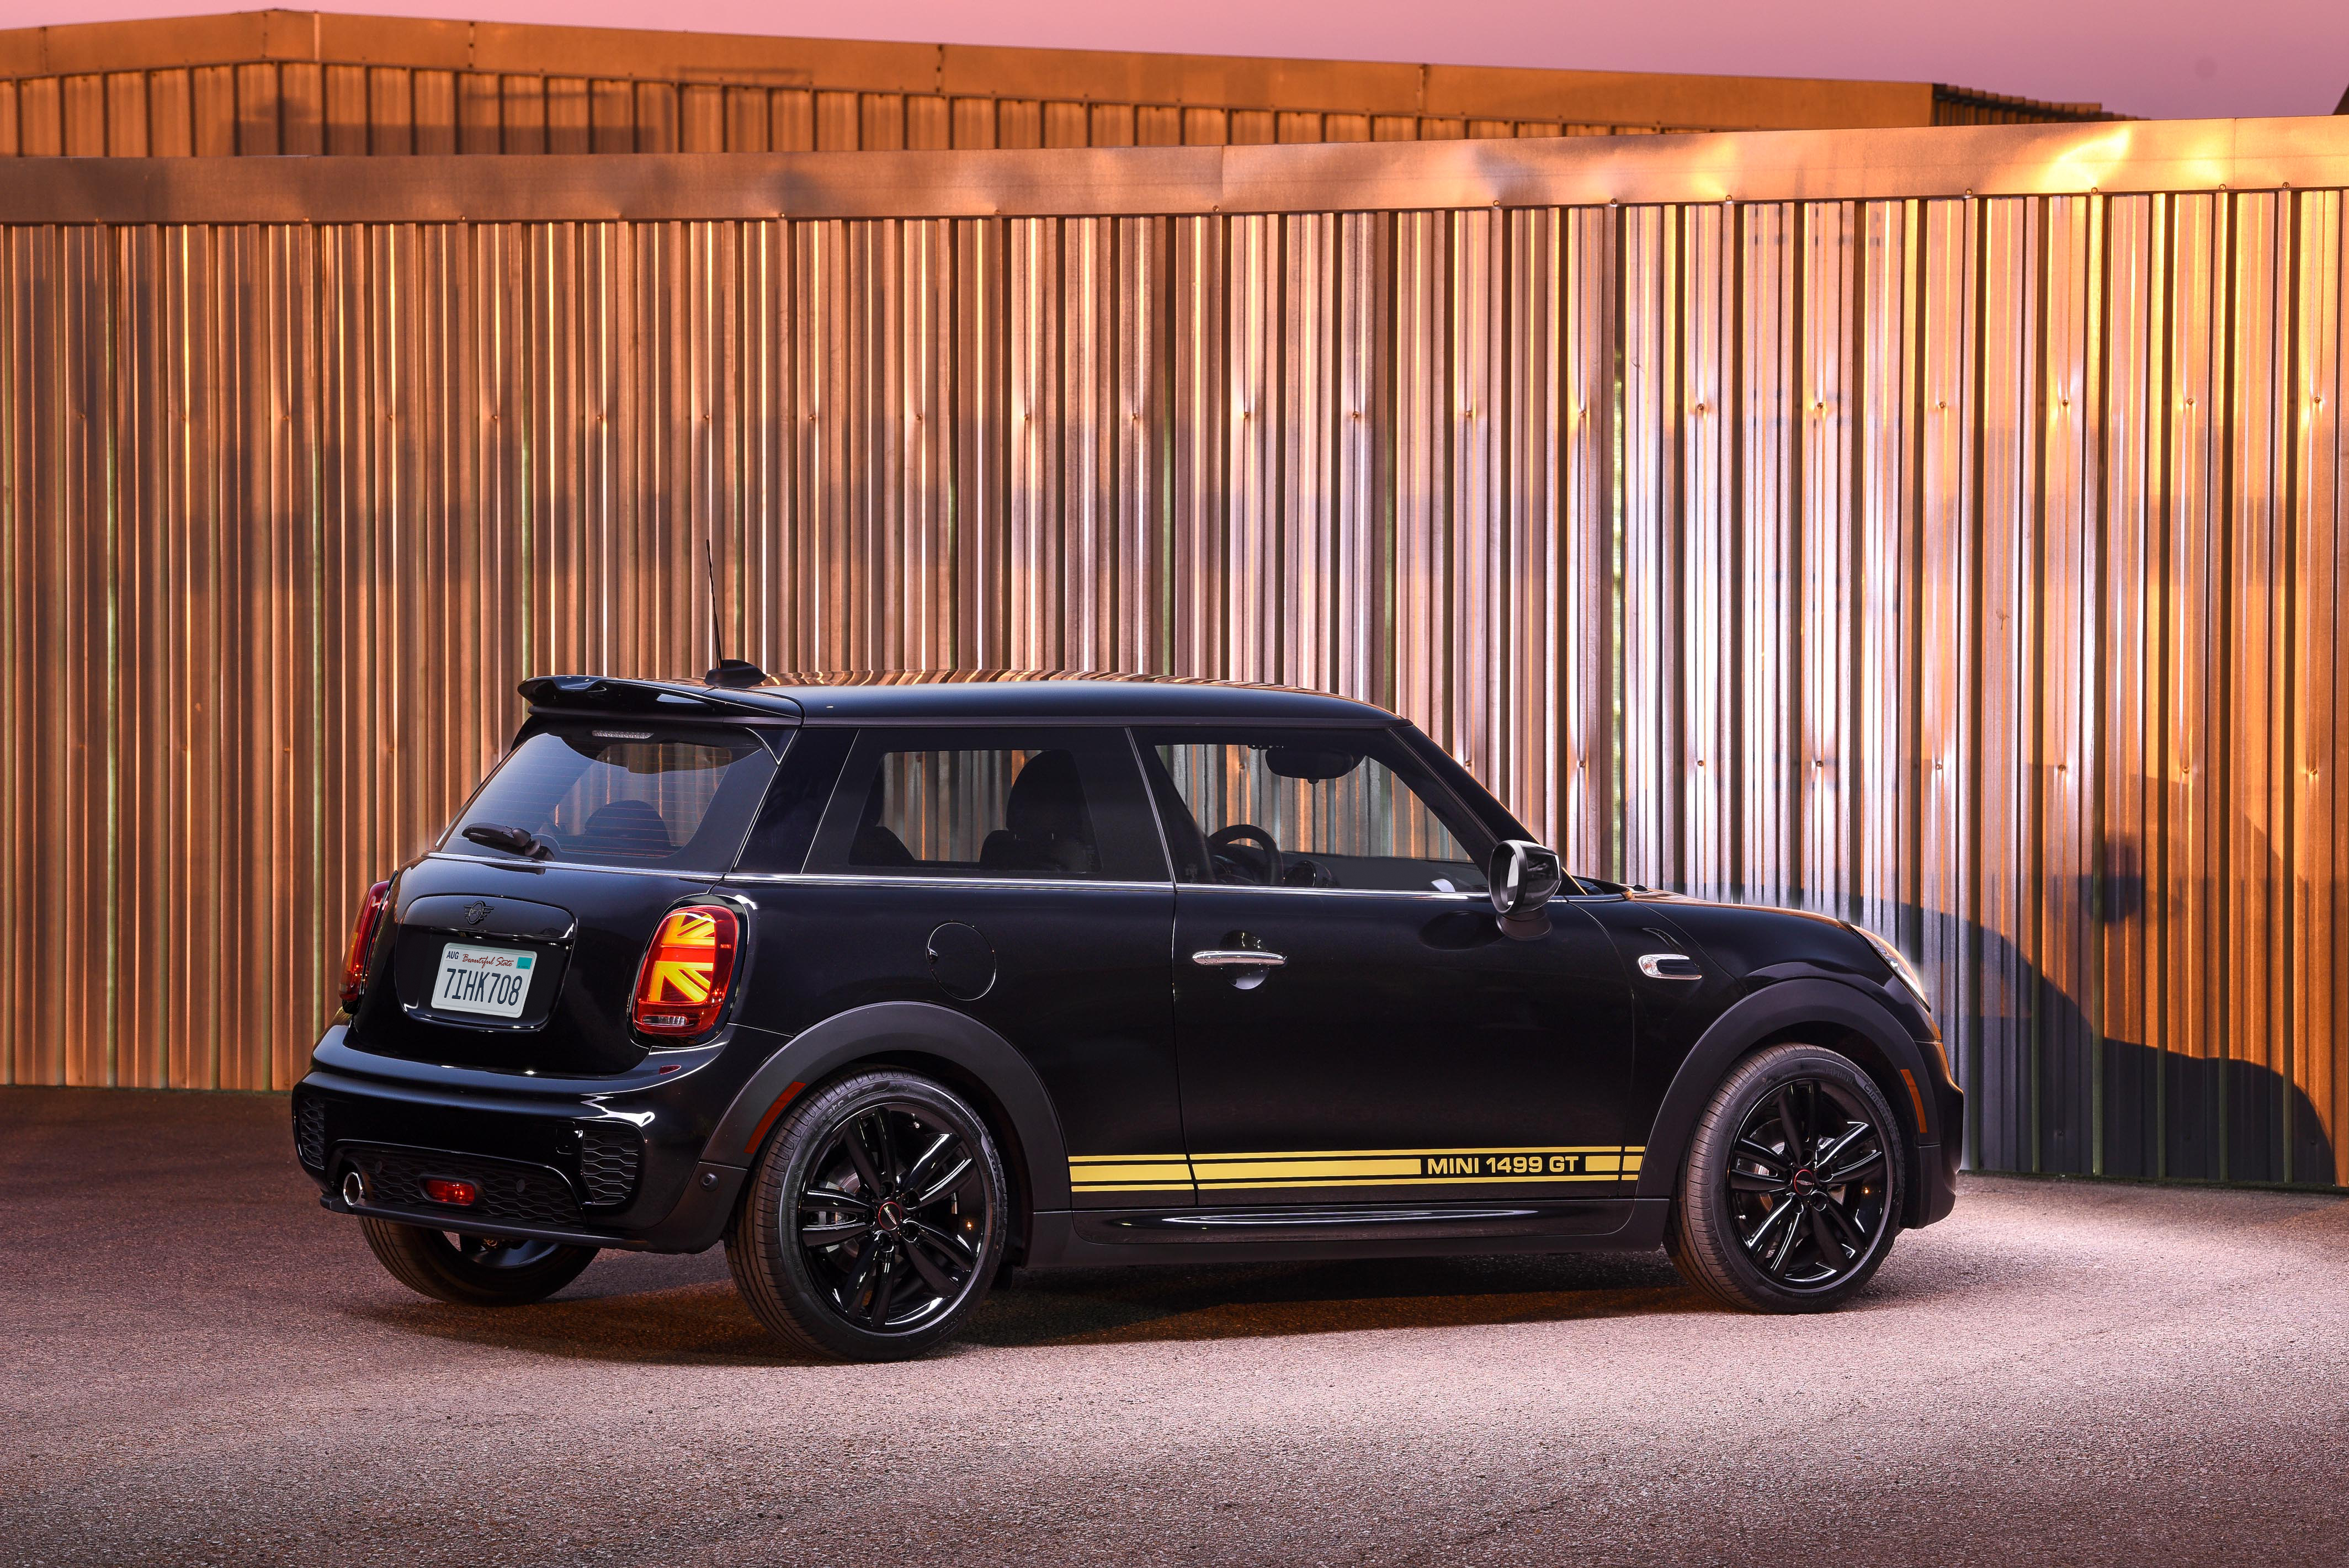 Mini 1499 GT with Piano Black trim